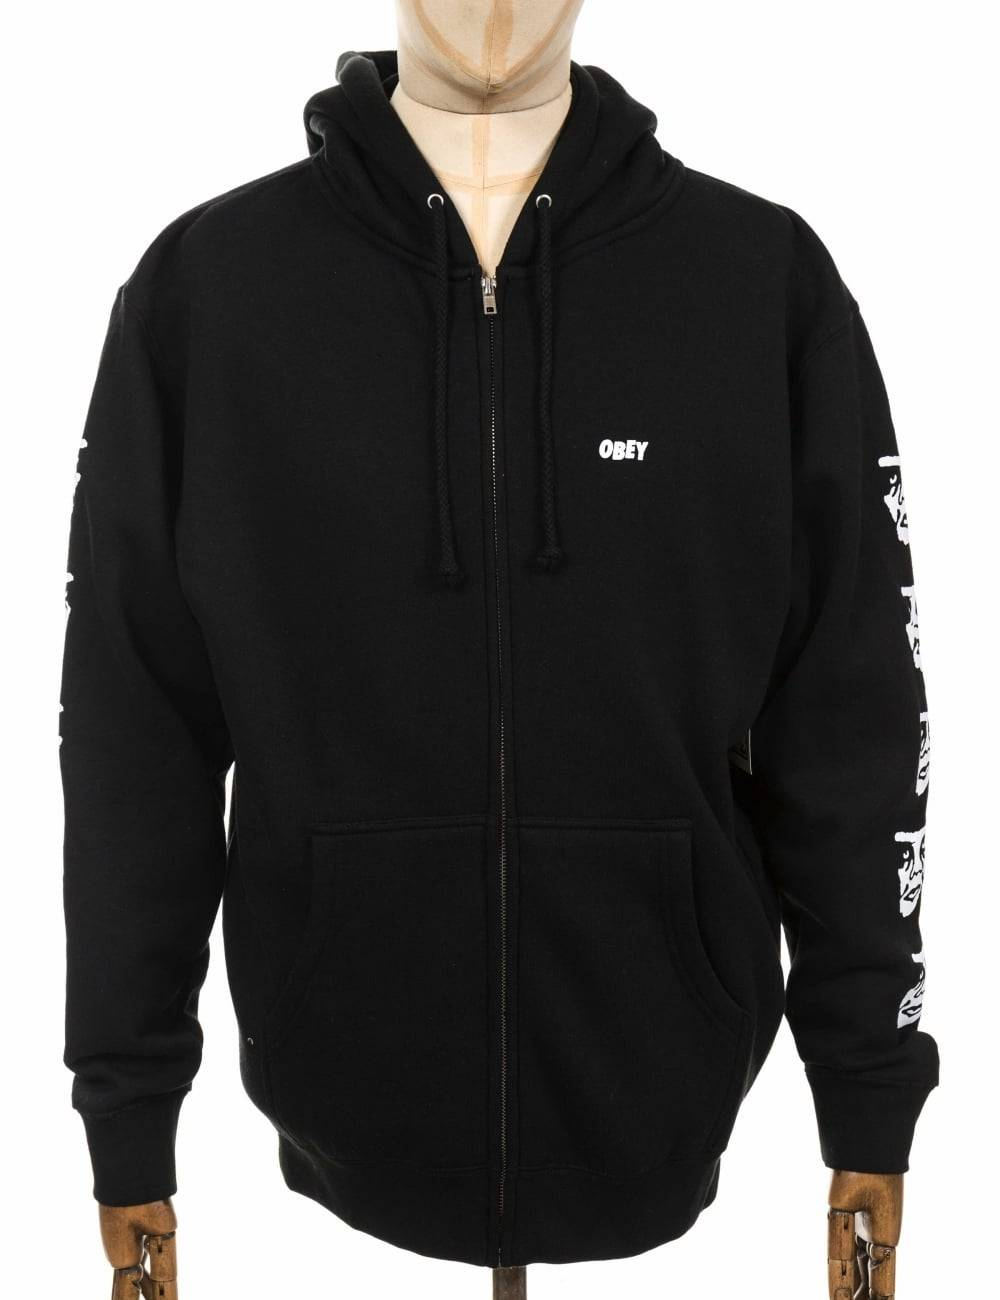 Obey Clothing Creeper 2 Zip Hooded Sweat - Black Size: Large, Colour: